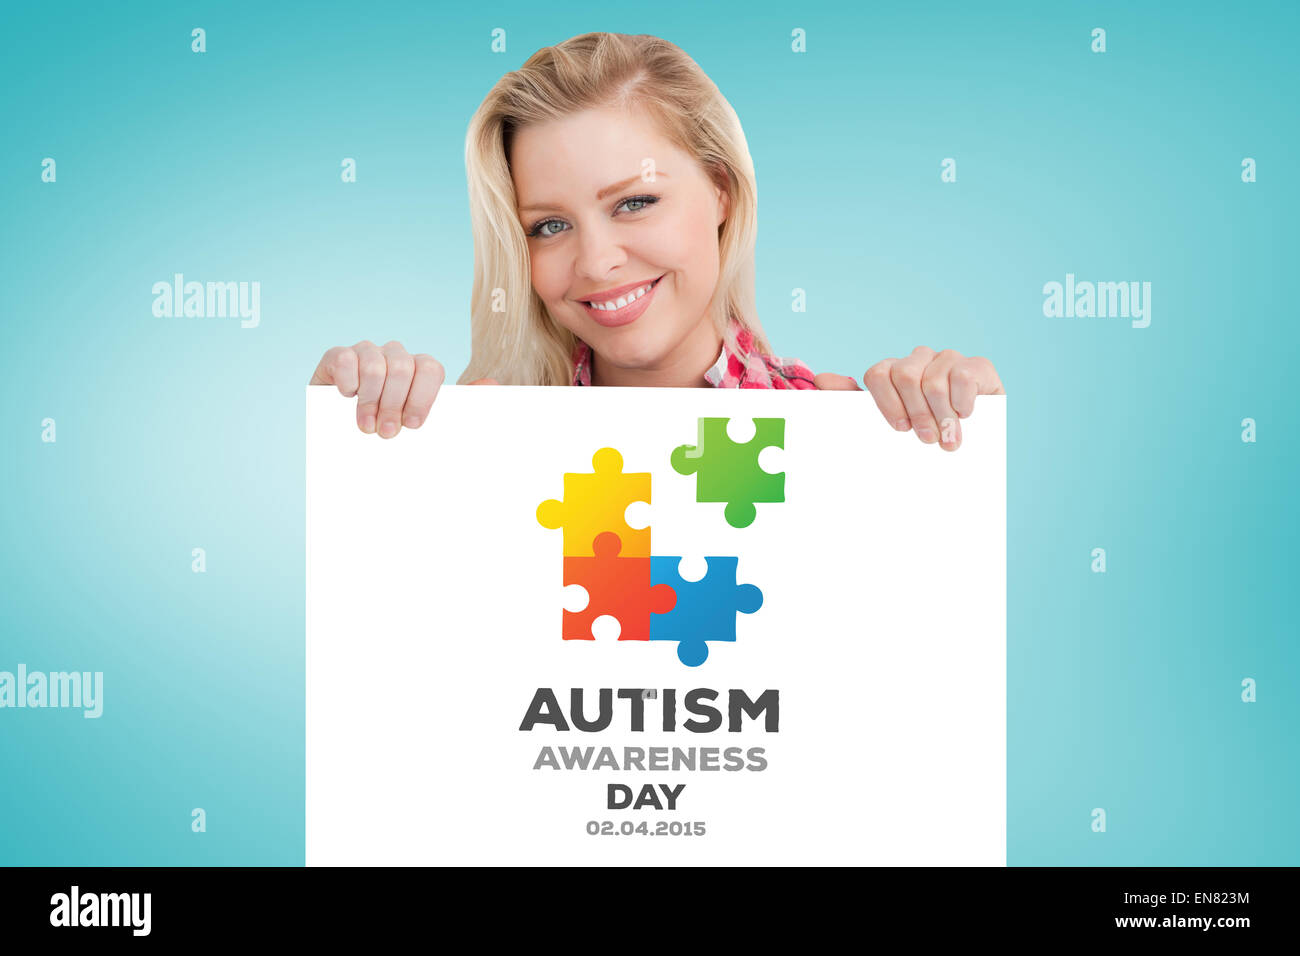 Composite image of woman beaming while holding a blank sign - Stock Image